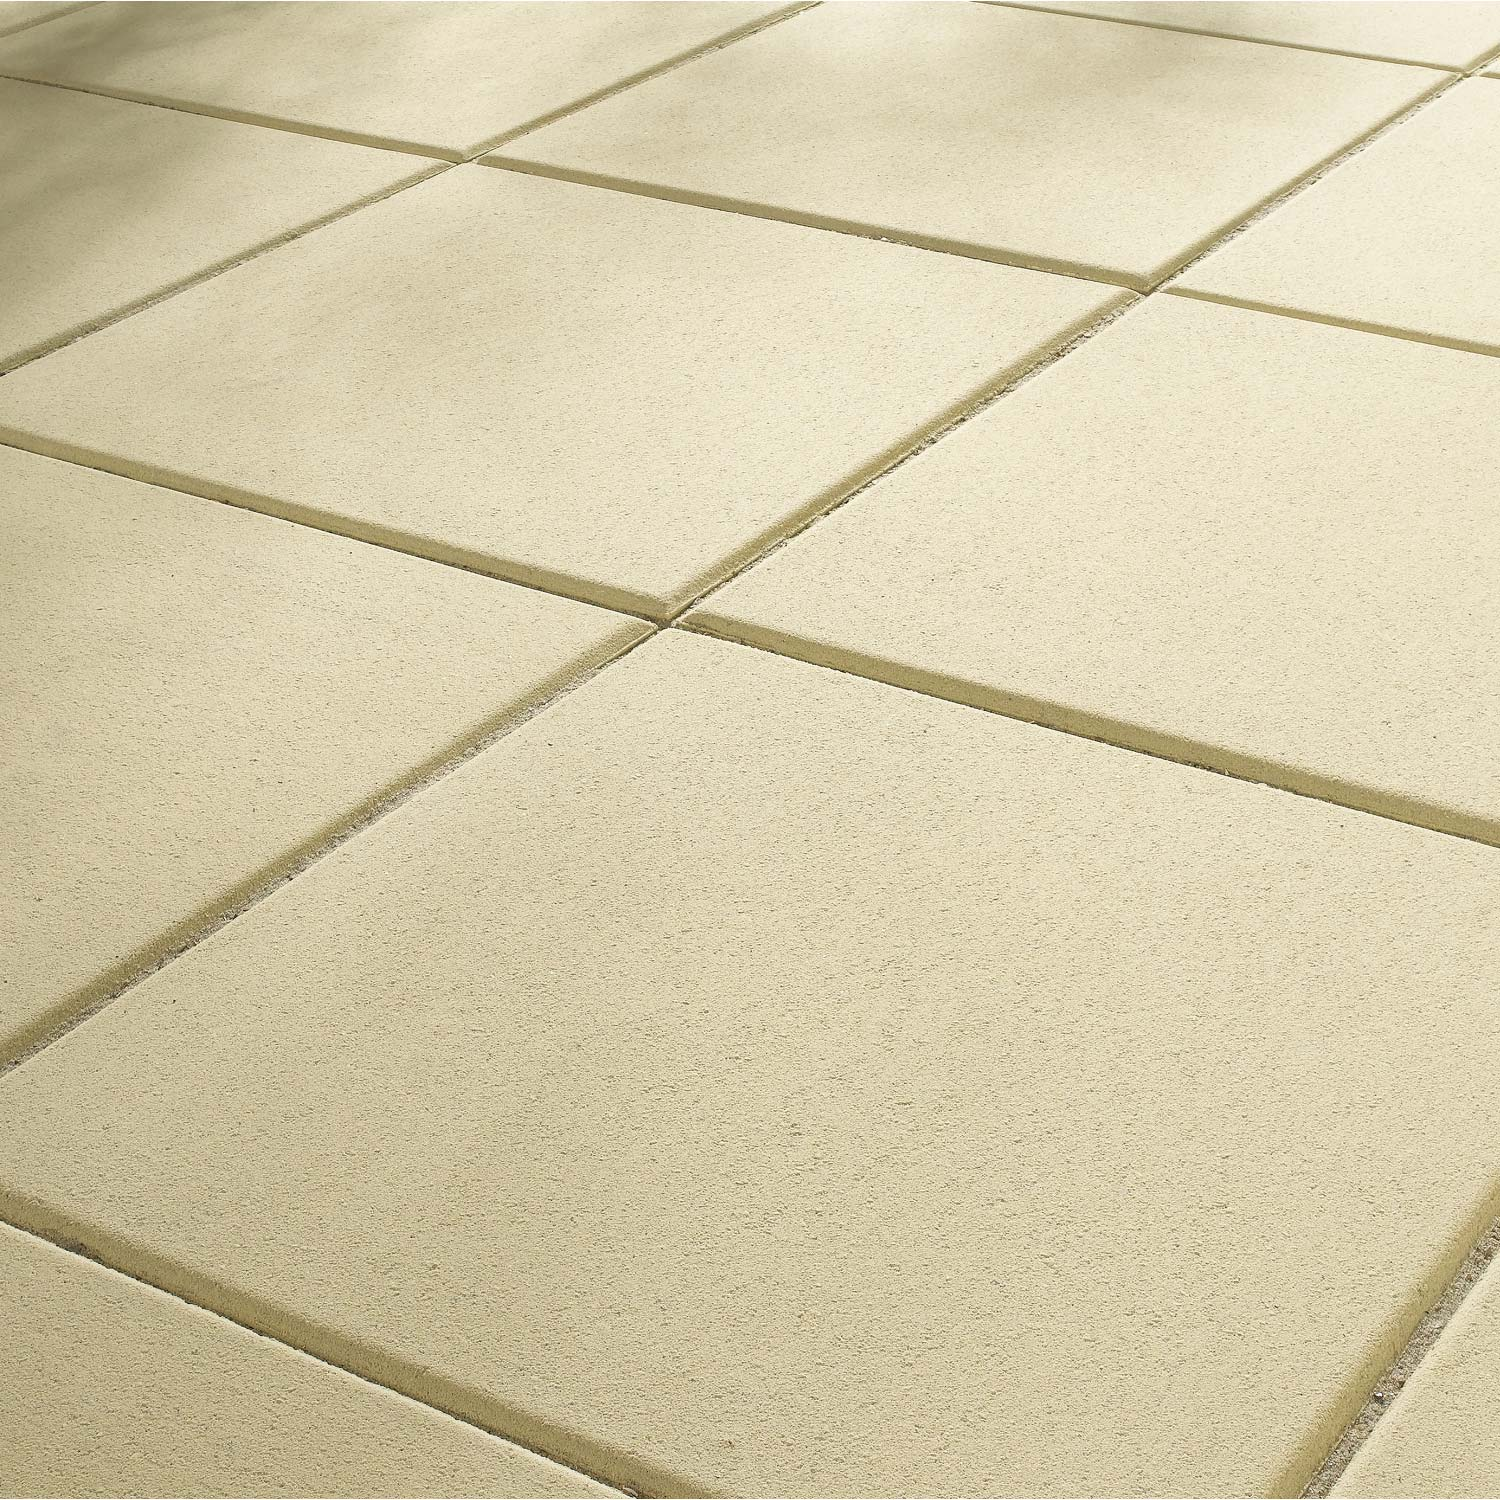 Dalle pierre reconstitu e aubrac ocre x cm x for Dalle beton finition quartz